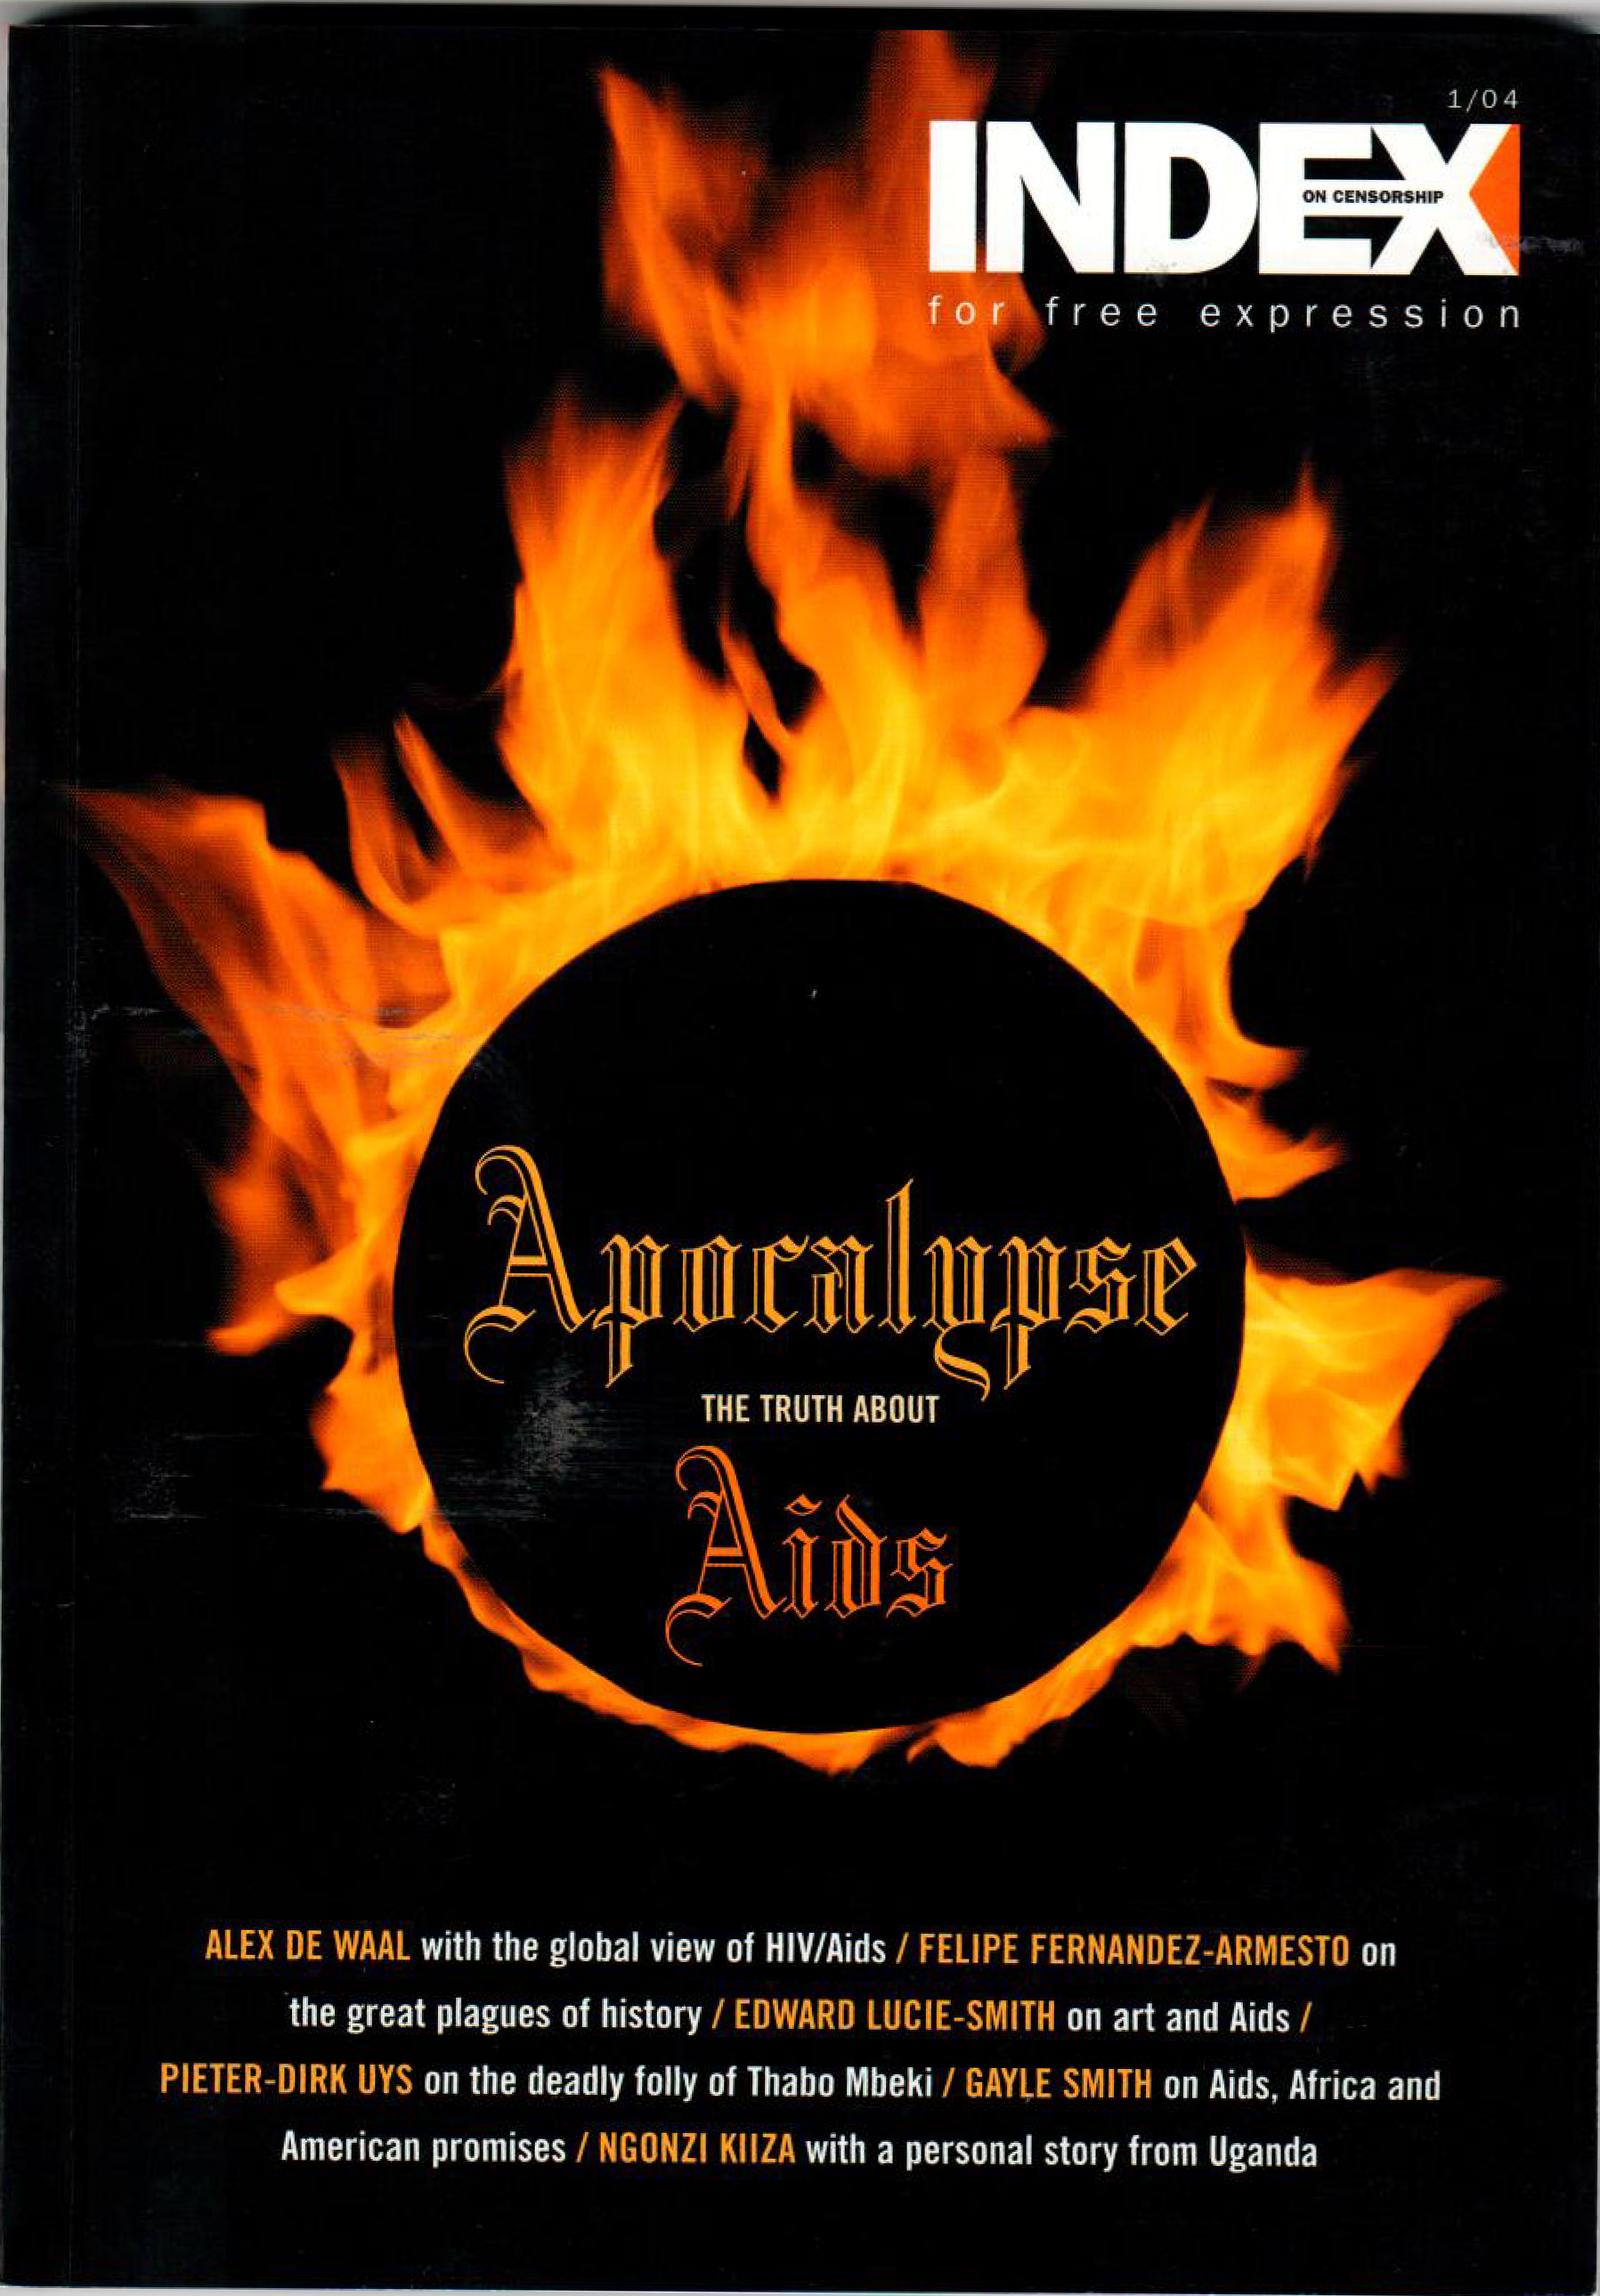 Apocalypse: The truth about AIDS, the spring 2004 issue of Index on Censorship magazine.